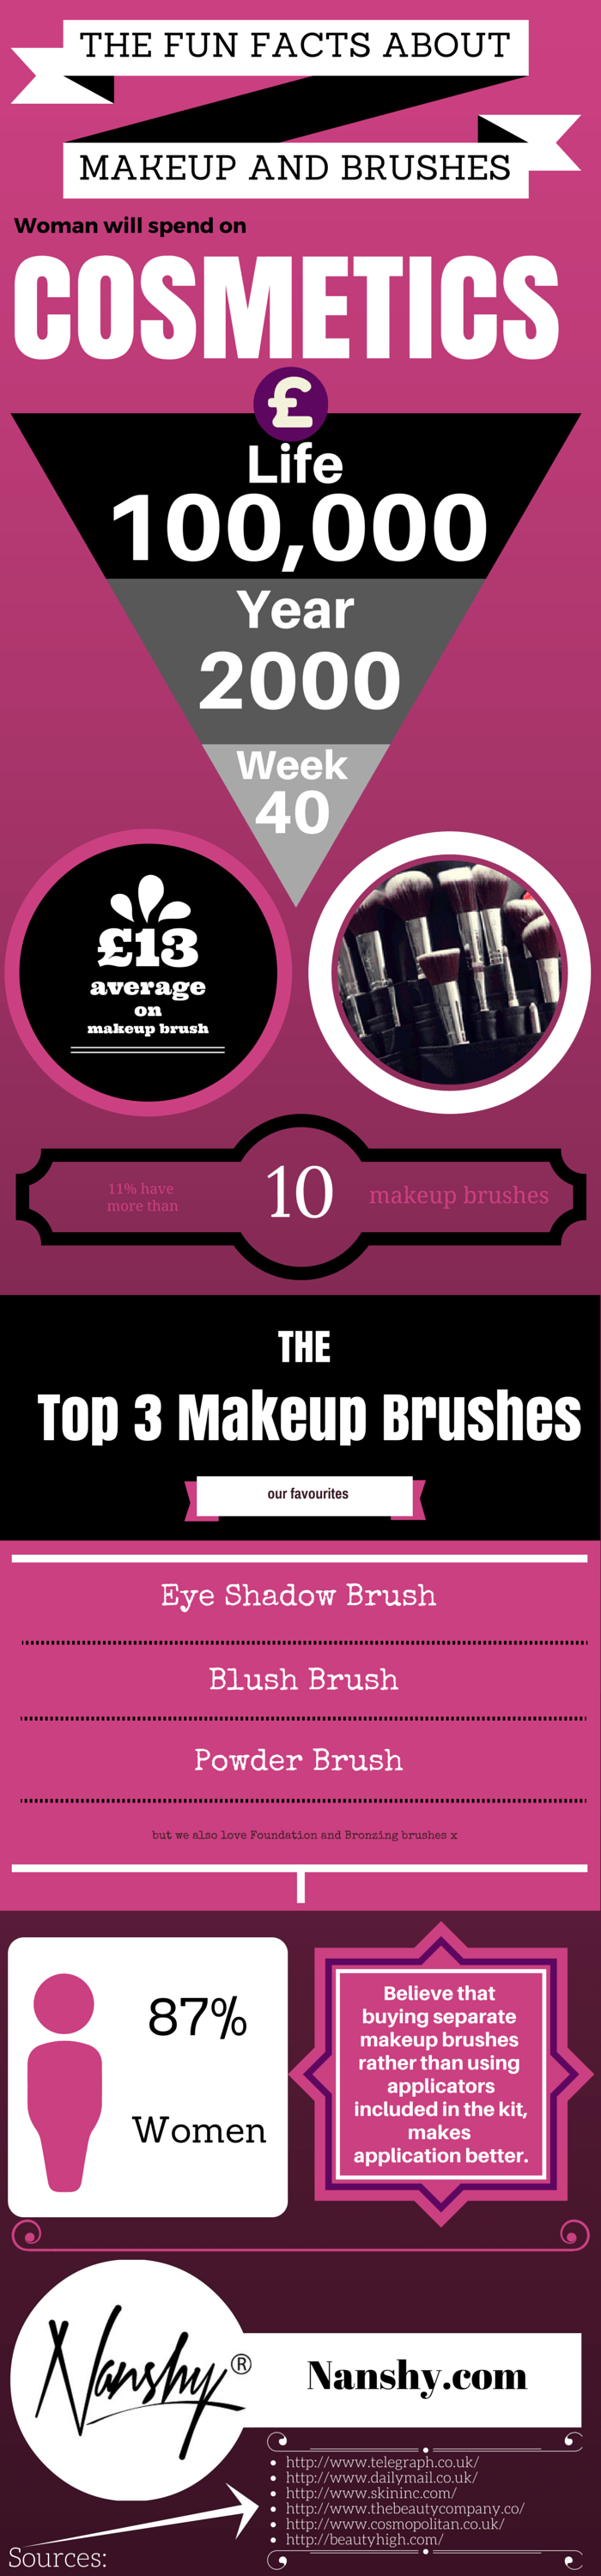 facts about makeup and brushes